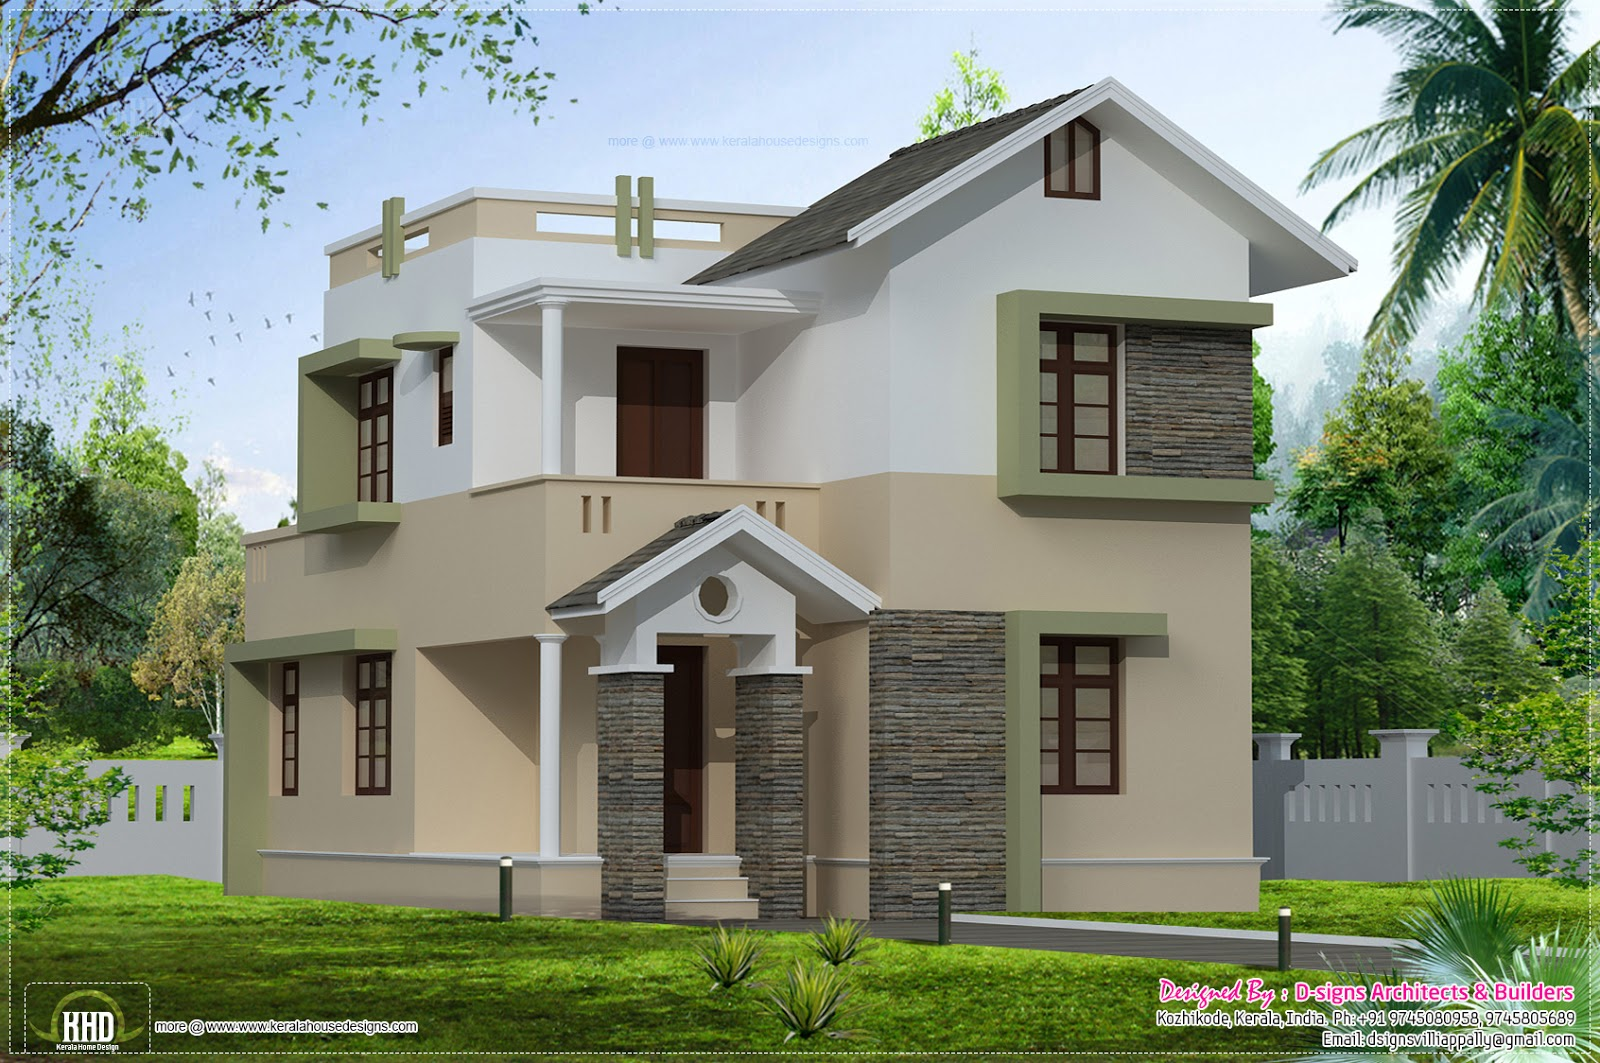 Front elevation of small houses home design and decor reviews - Design house ...